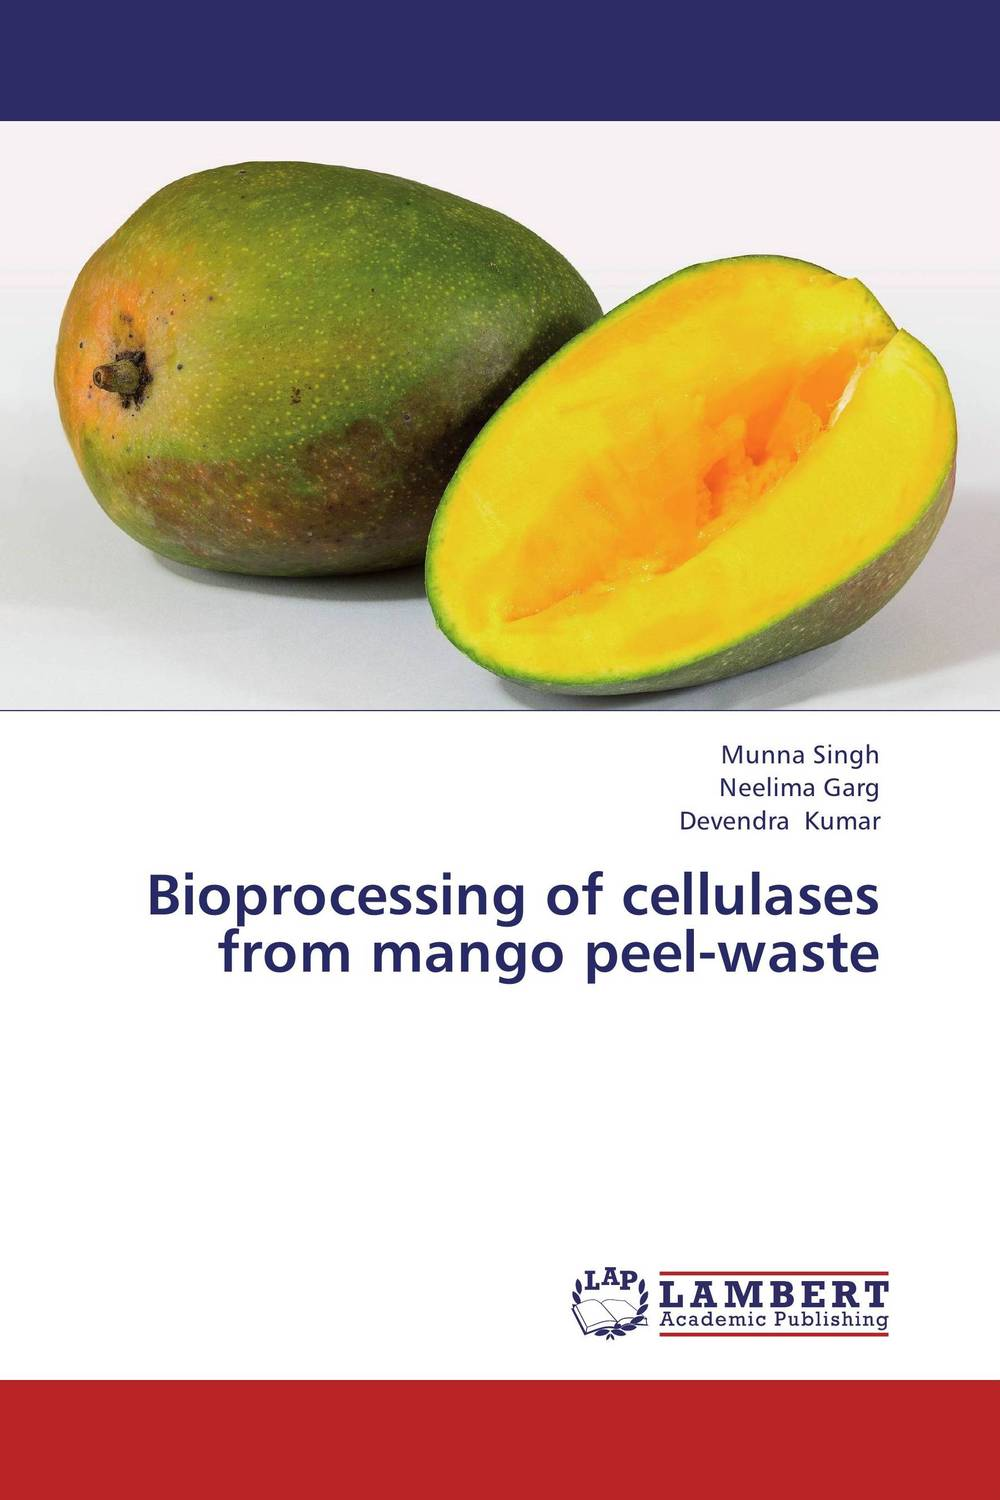 Bioprocessing of cellulases from mango peel-waste production of cellulases by aspergillus niger